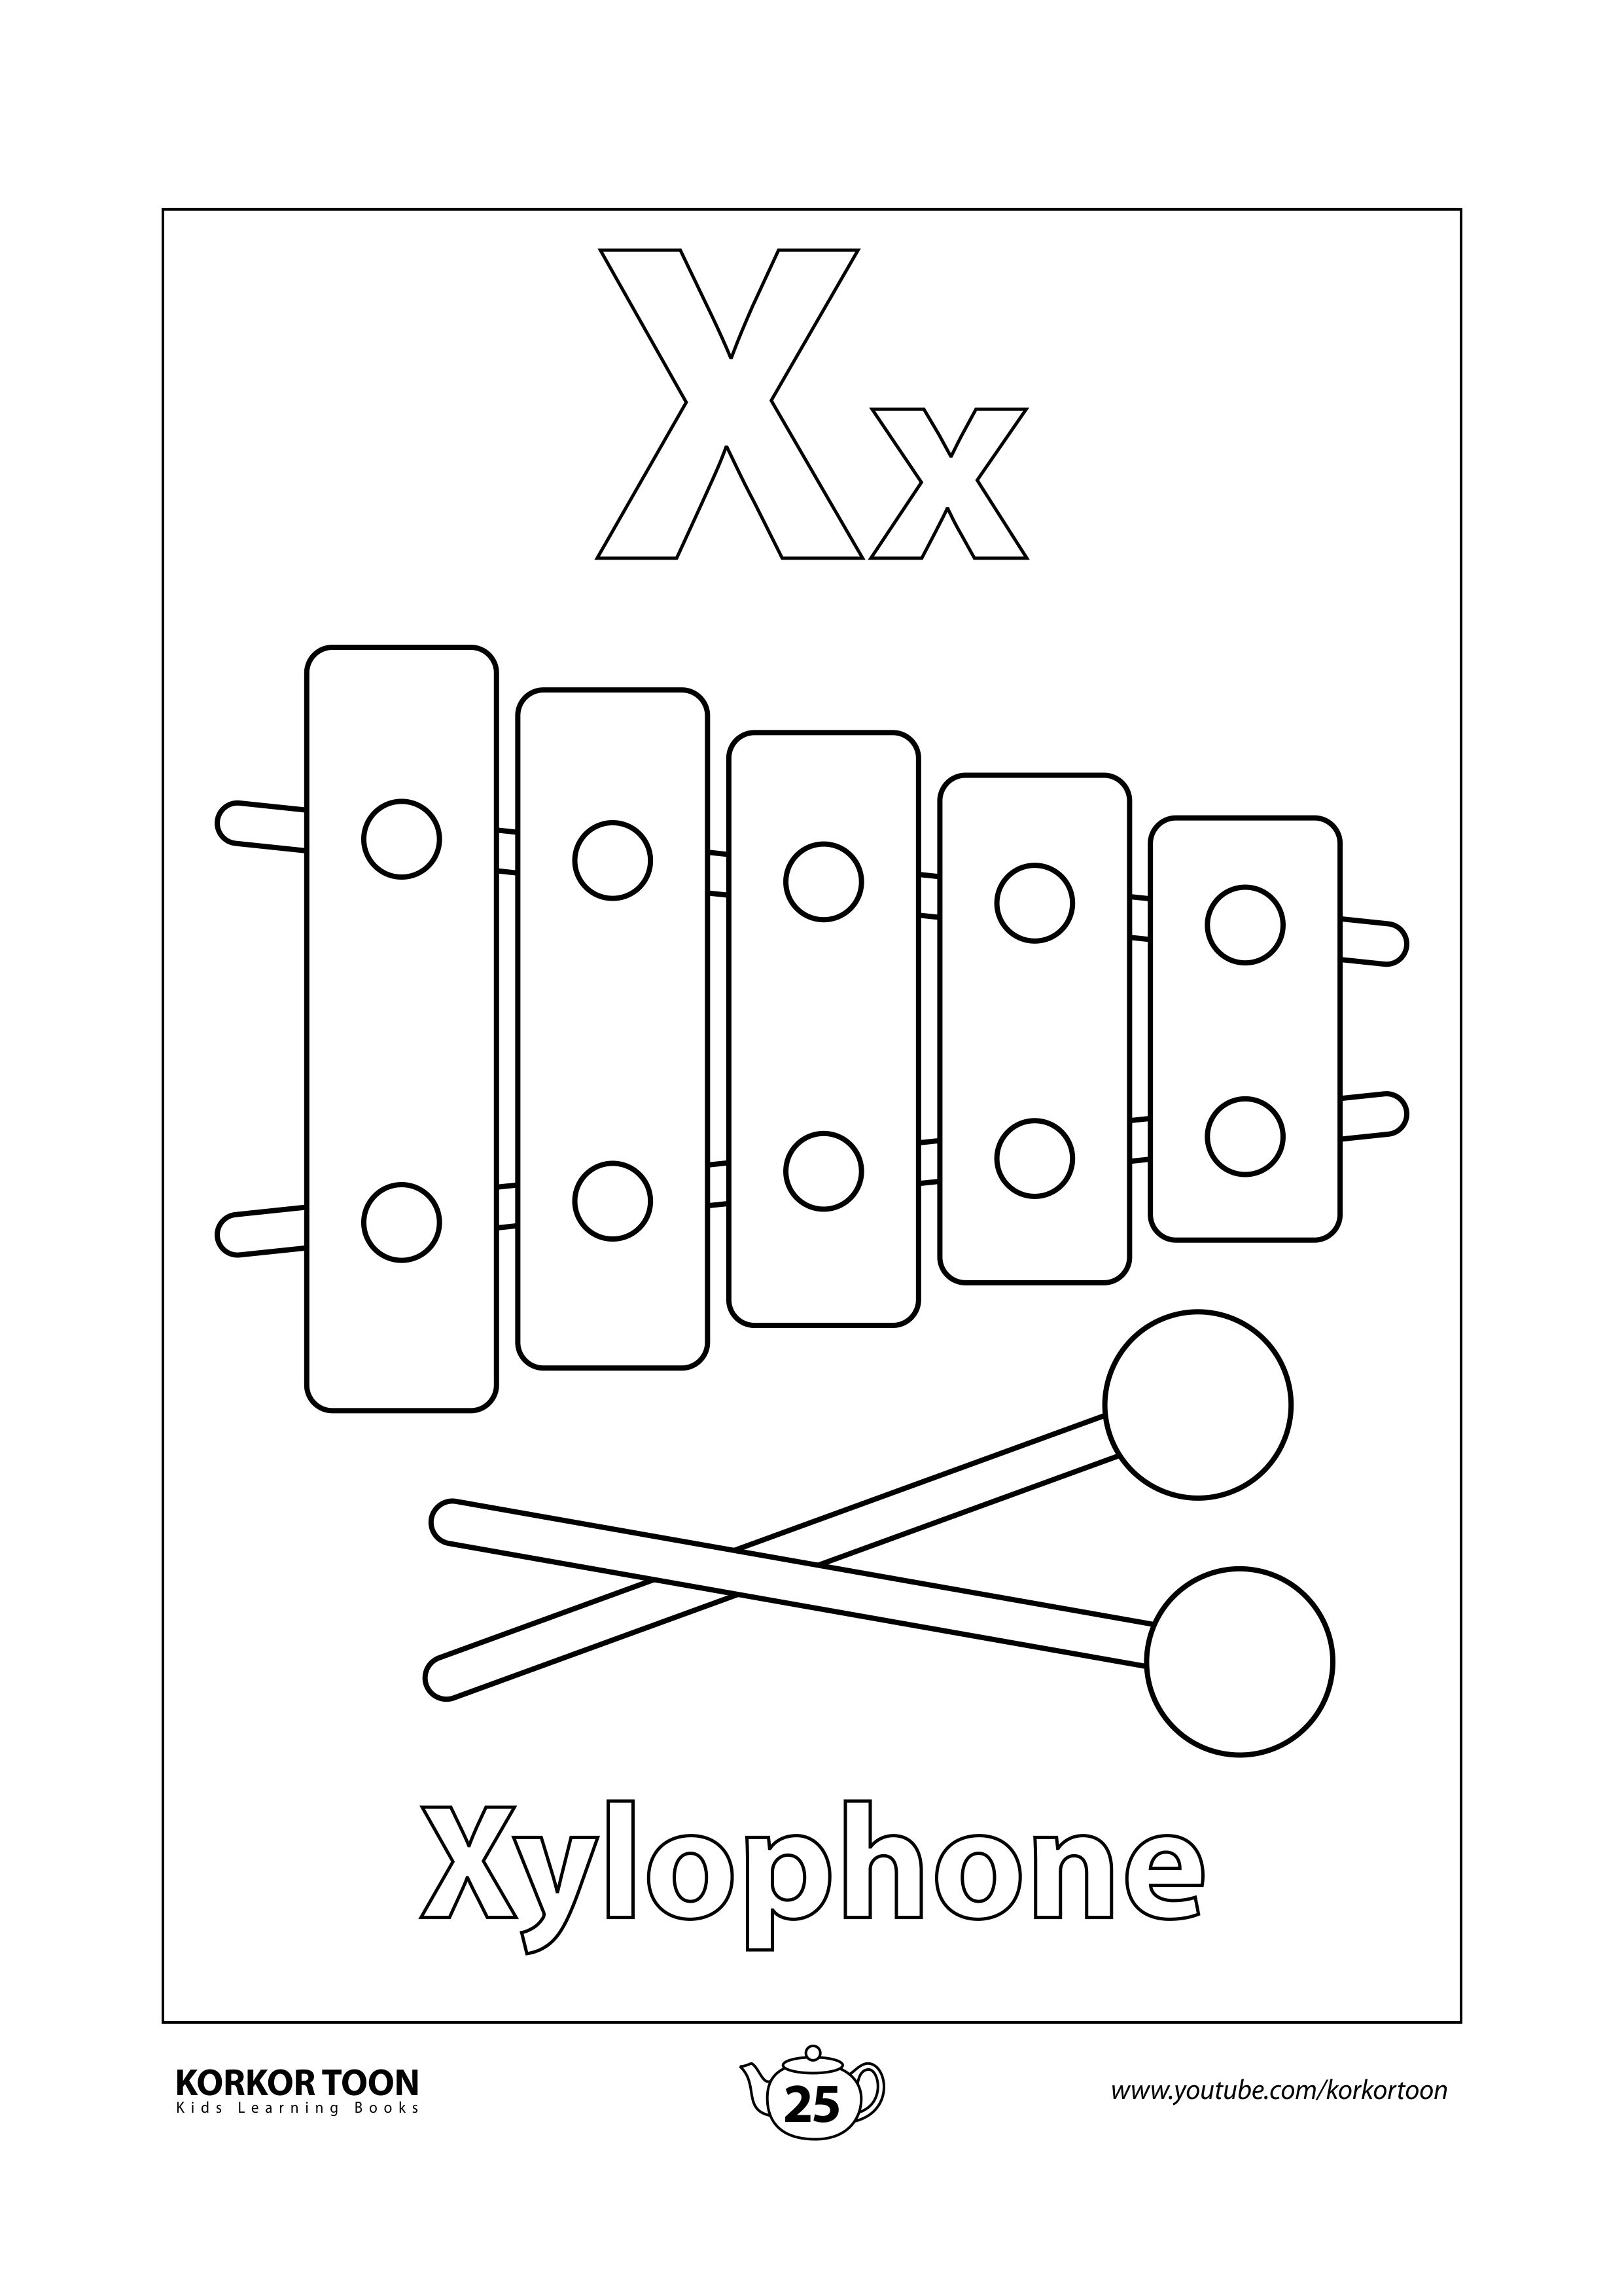 Xylophone Coloring Page Abc Coloring Book Coloring Books Abc Coloring Printables Free Kids